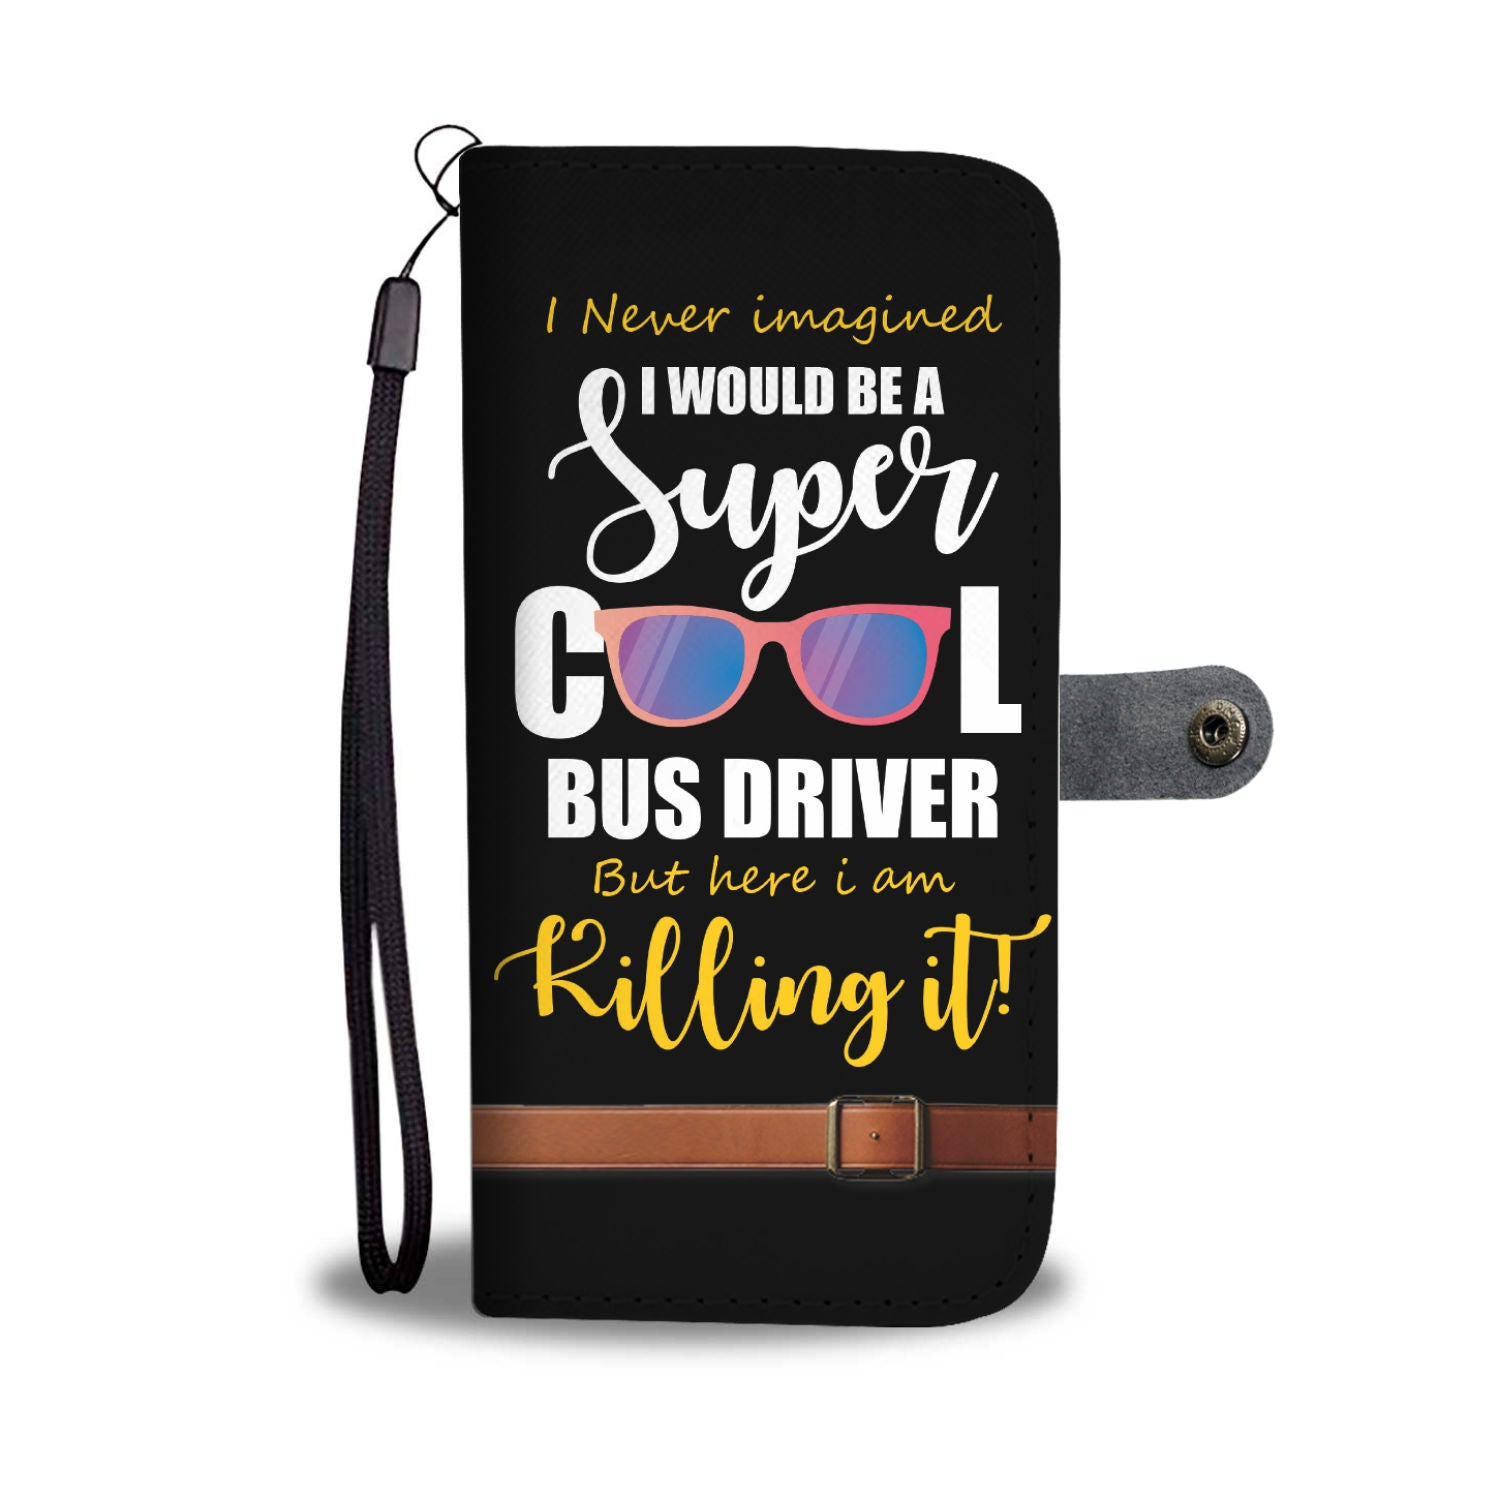 I Never Imagined I Would Be A Super Cool Bus Driver But Here I Am Killing It! Wallet Phone Case